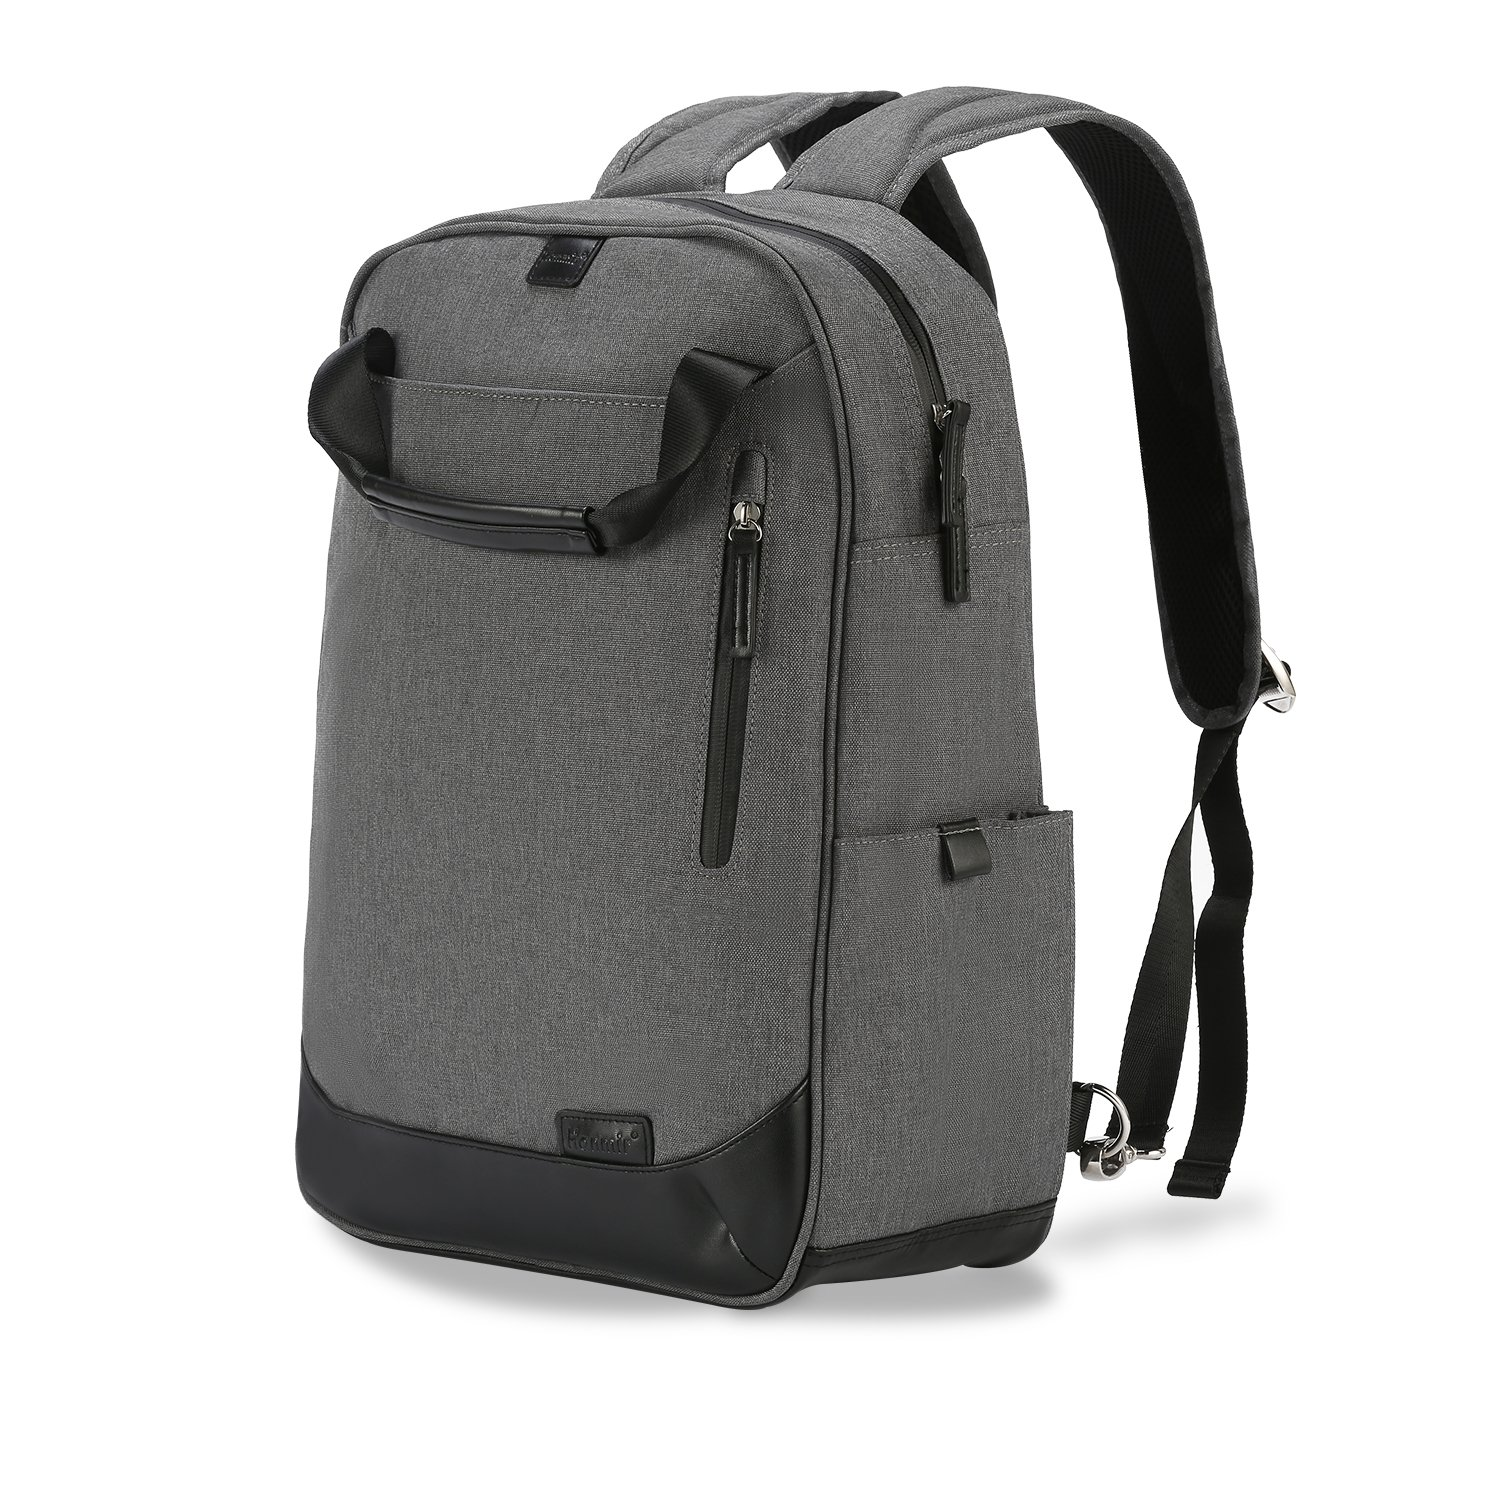 71652eabd70c Kopack Deluxe Black Waterproof Laptop Backpack- Fenix Toulouse Handball